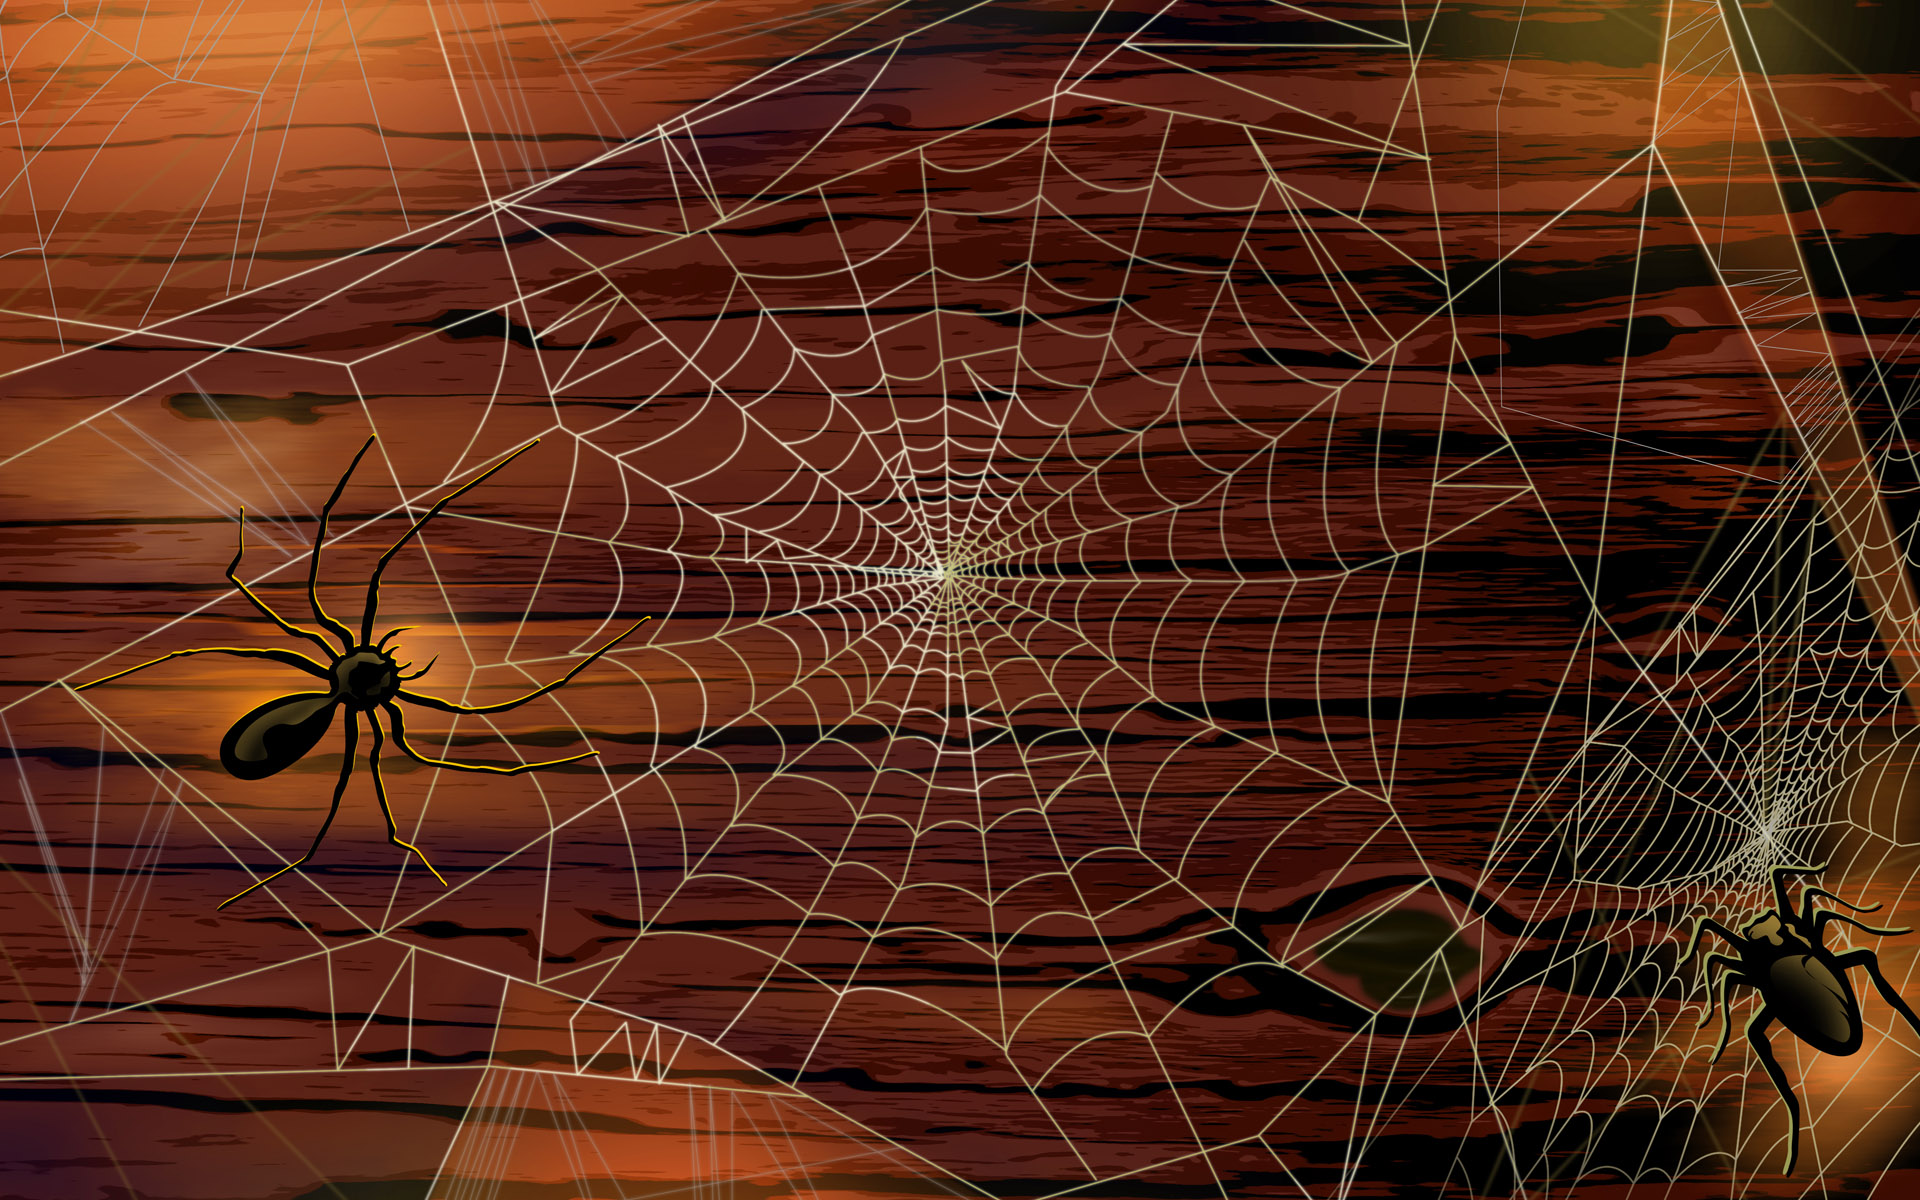 45 scary halloween 2012 hd wallpapers pumpkins witches spider web